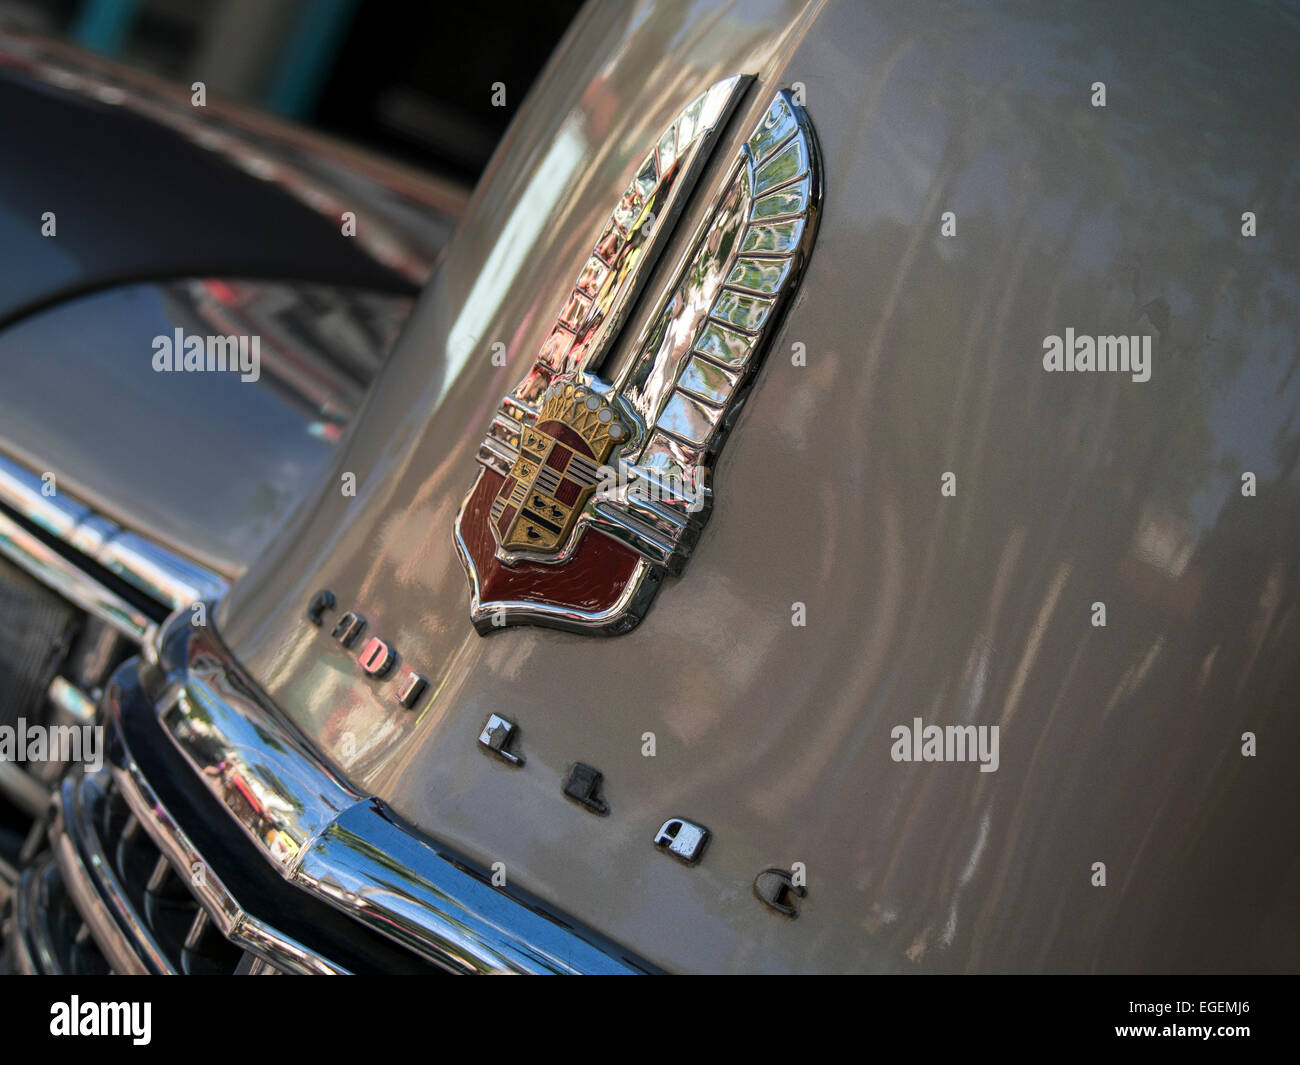 Hood and badge Detail on 1960s American Cadillac car - Stock Image